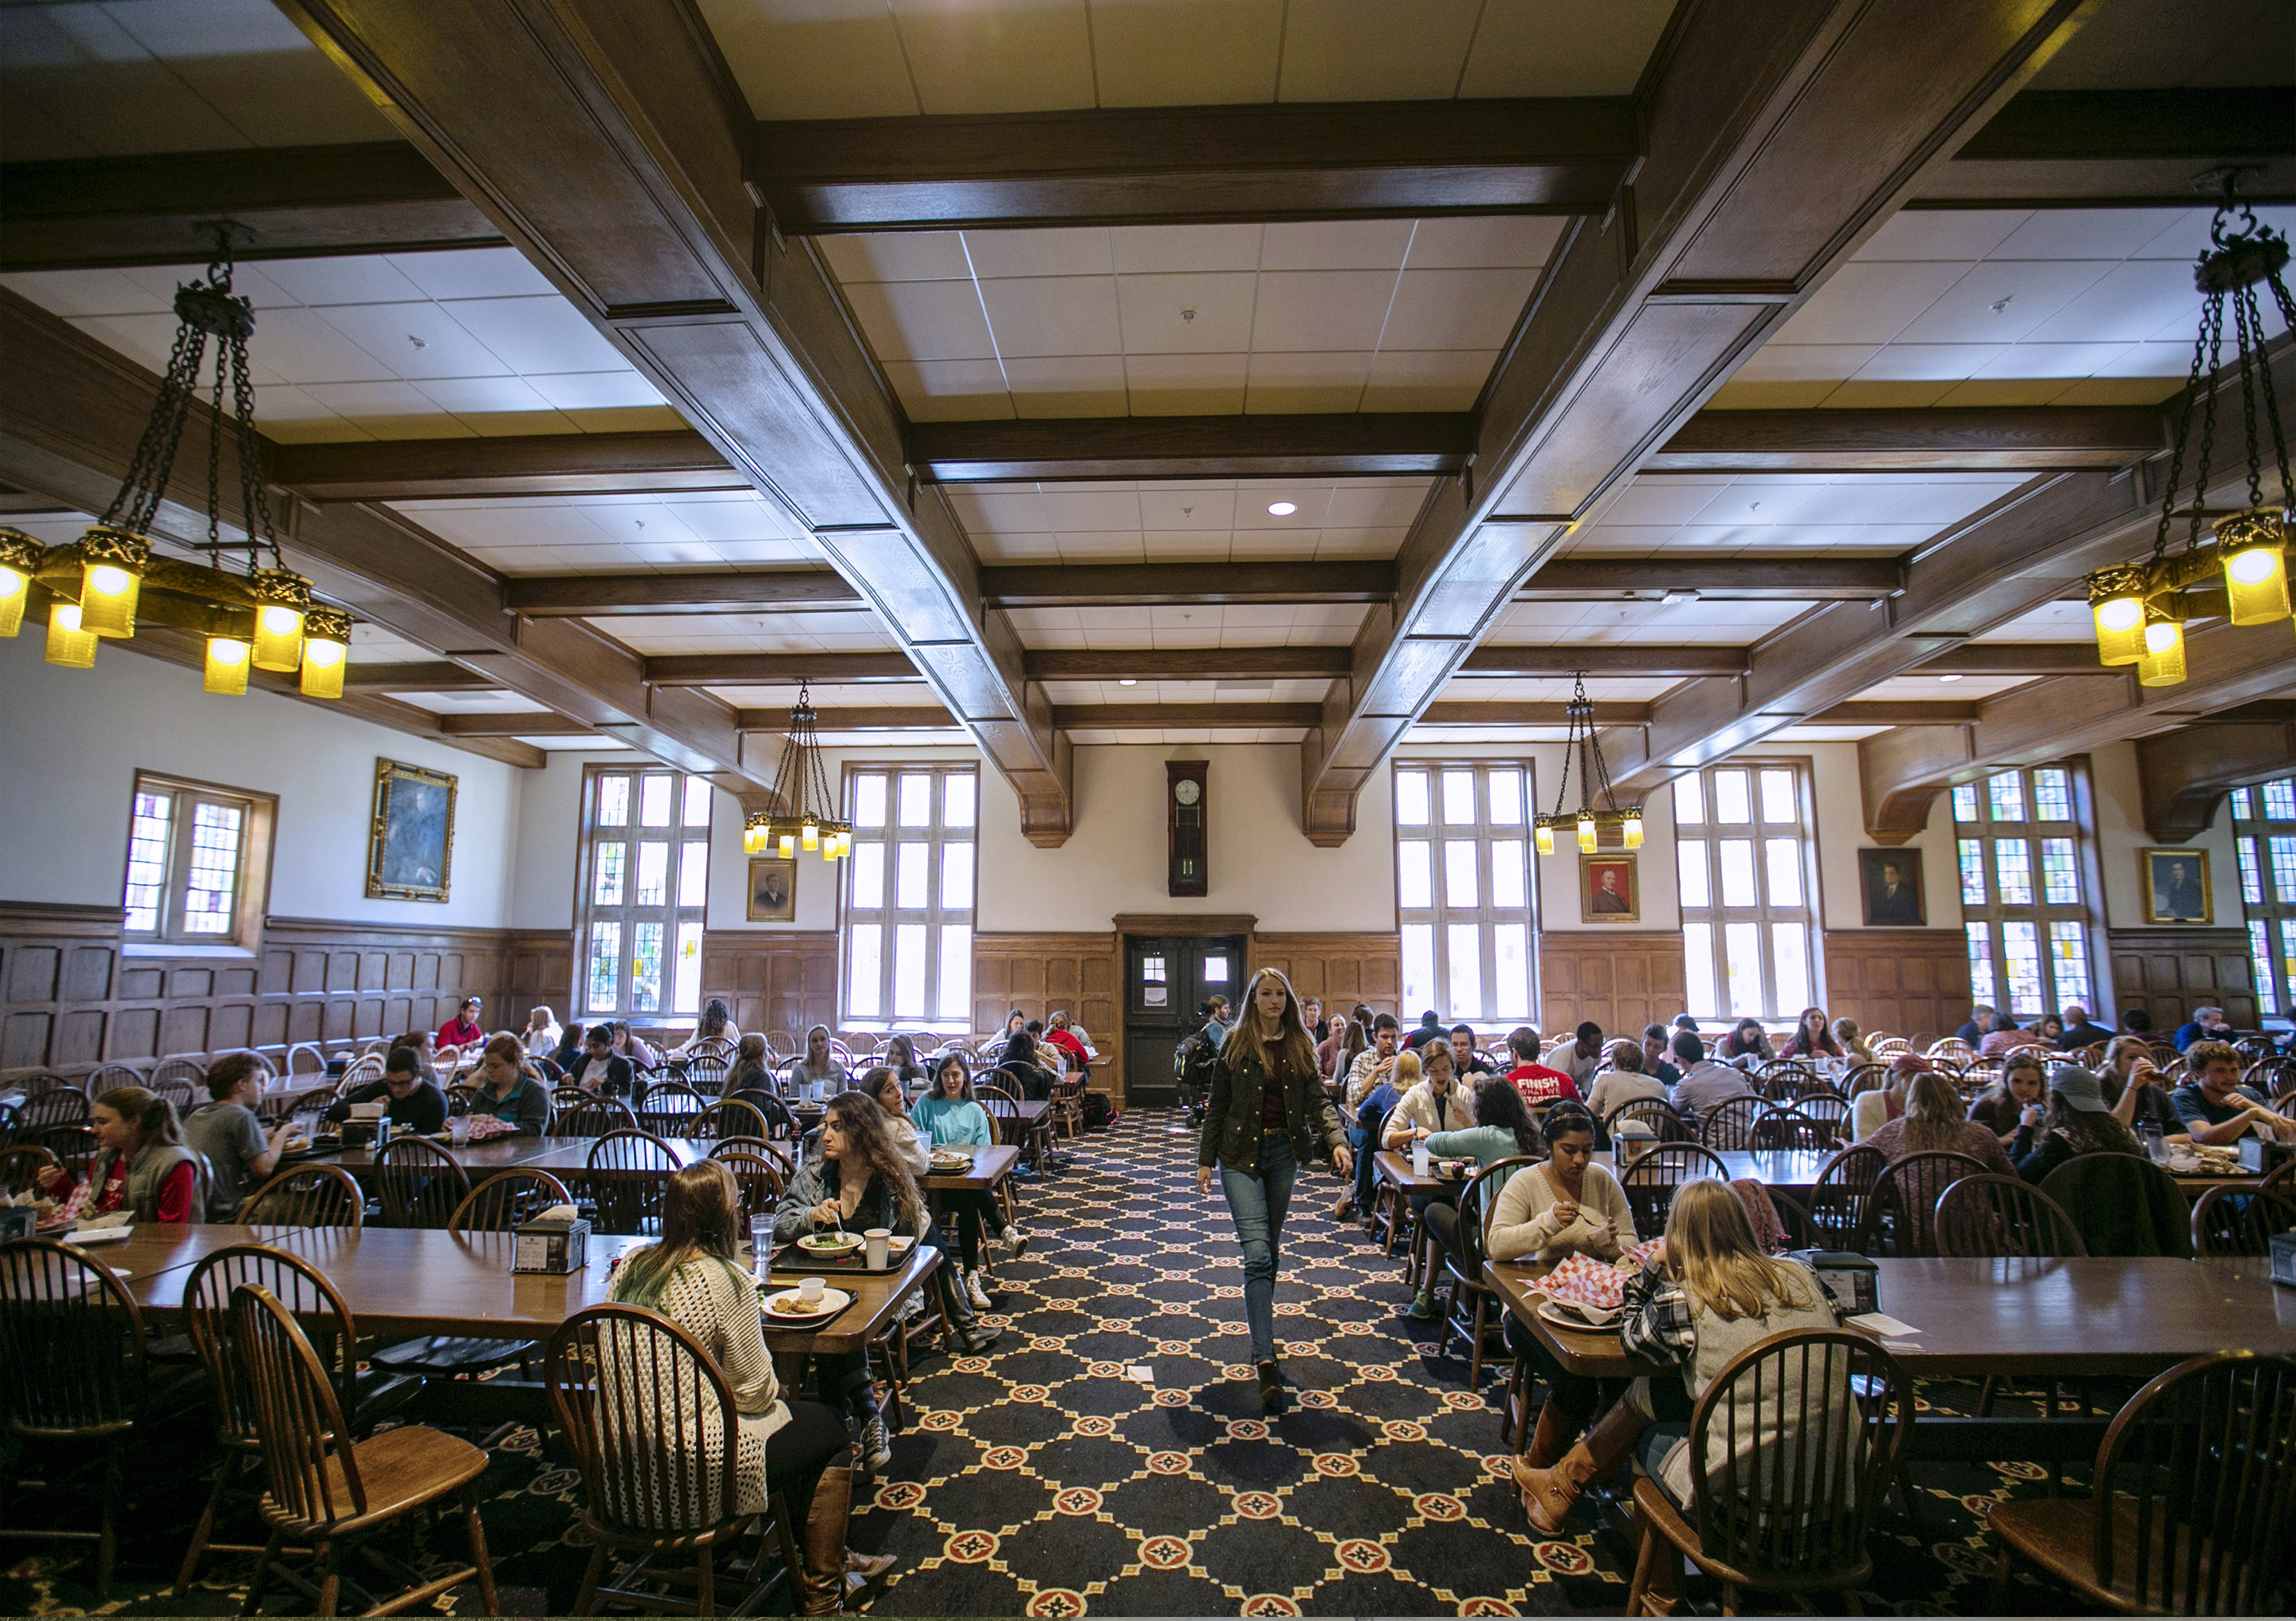 The main dining hall in the Catherine Burrow Refectory